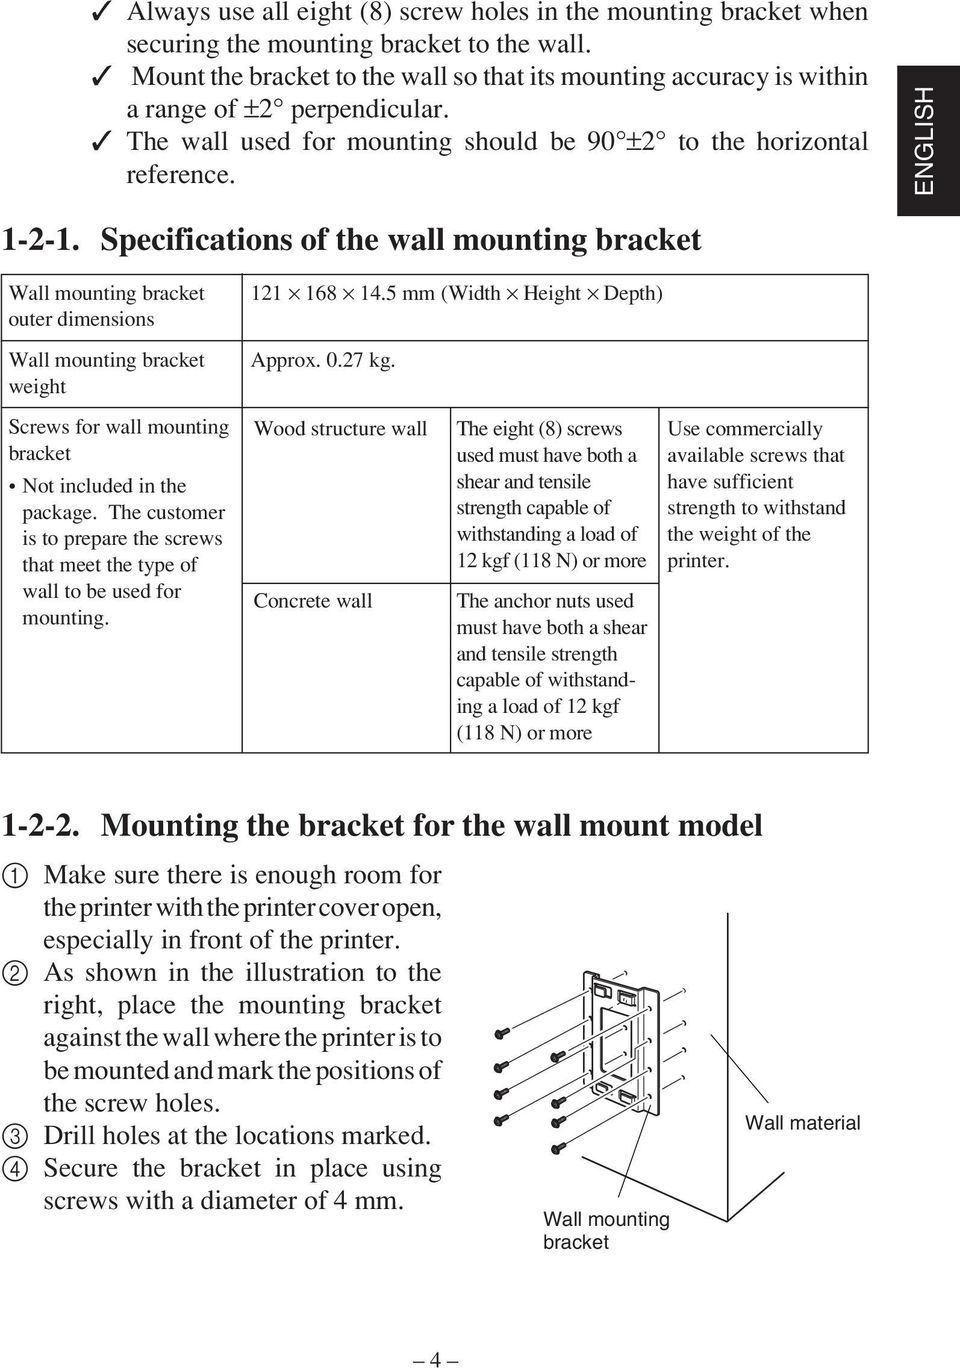 Specifications of the wall mounting bracket Wall mounting bracket outer dimensions Wall mounting bracket weight 121 168 14.5 mm (Width Height Depth) Approx. 0.27 kg.